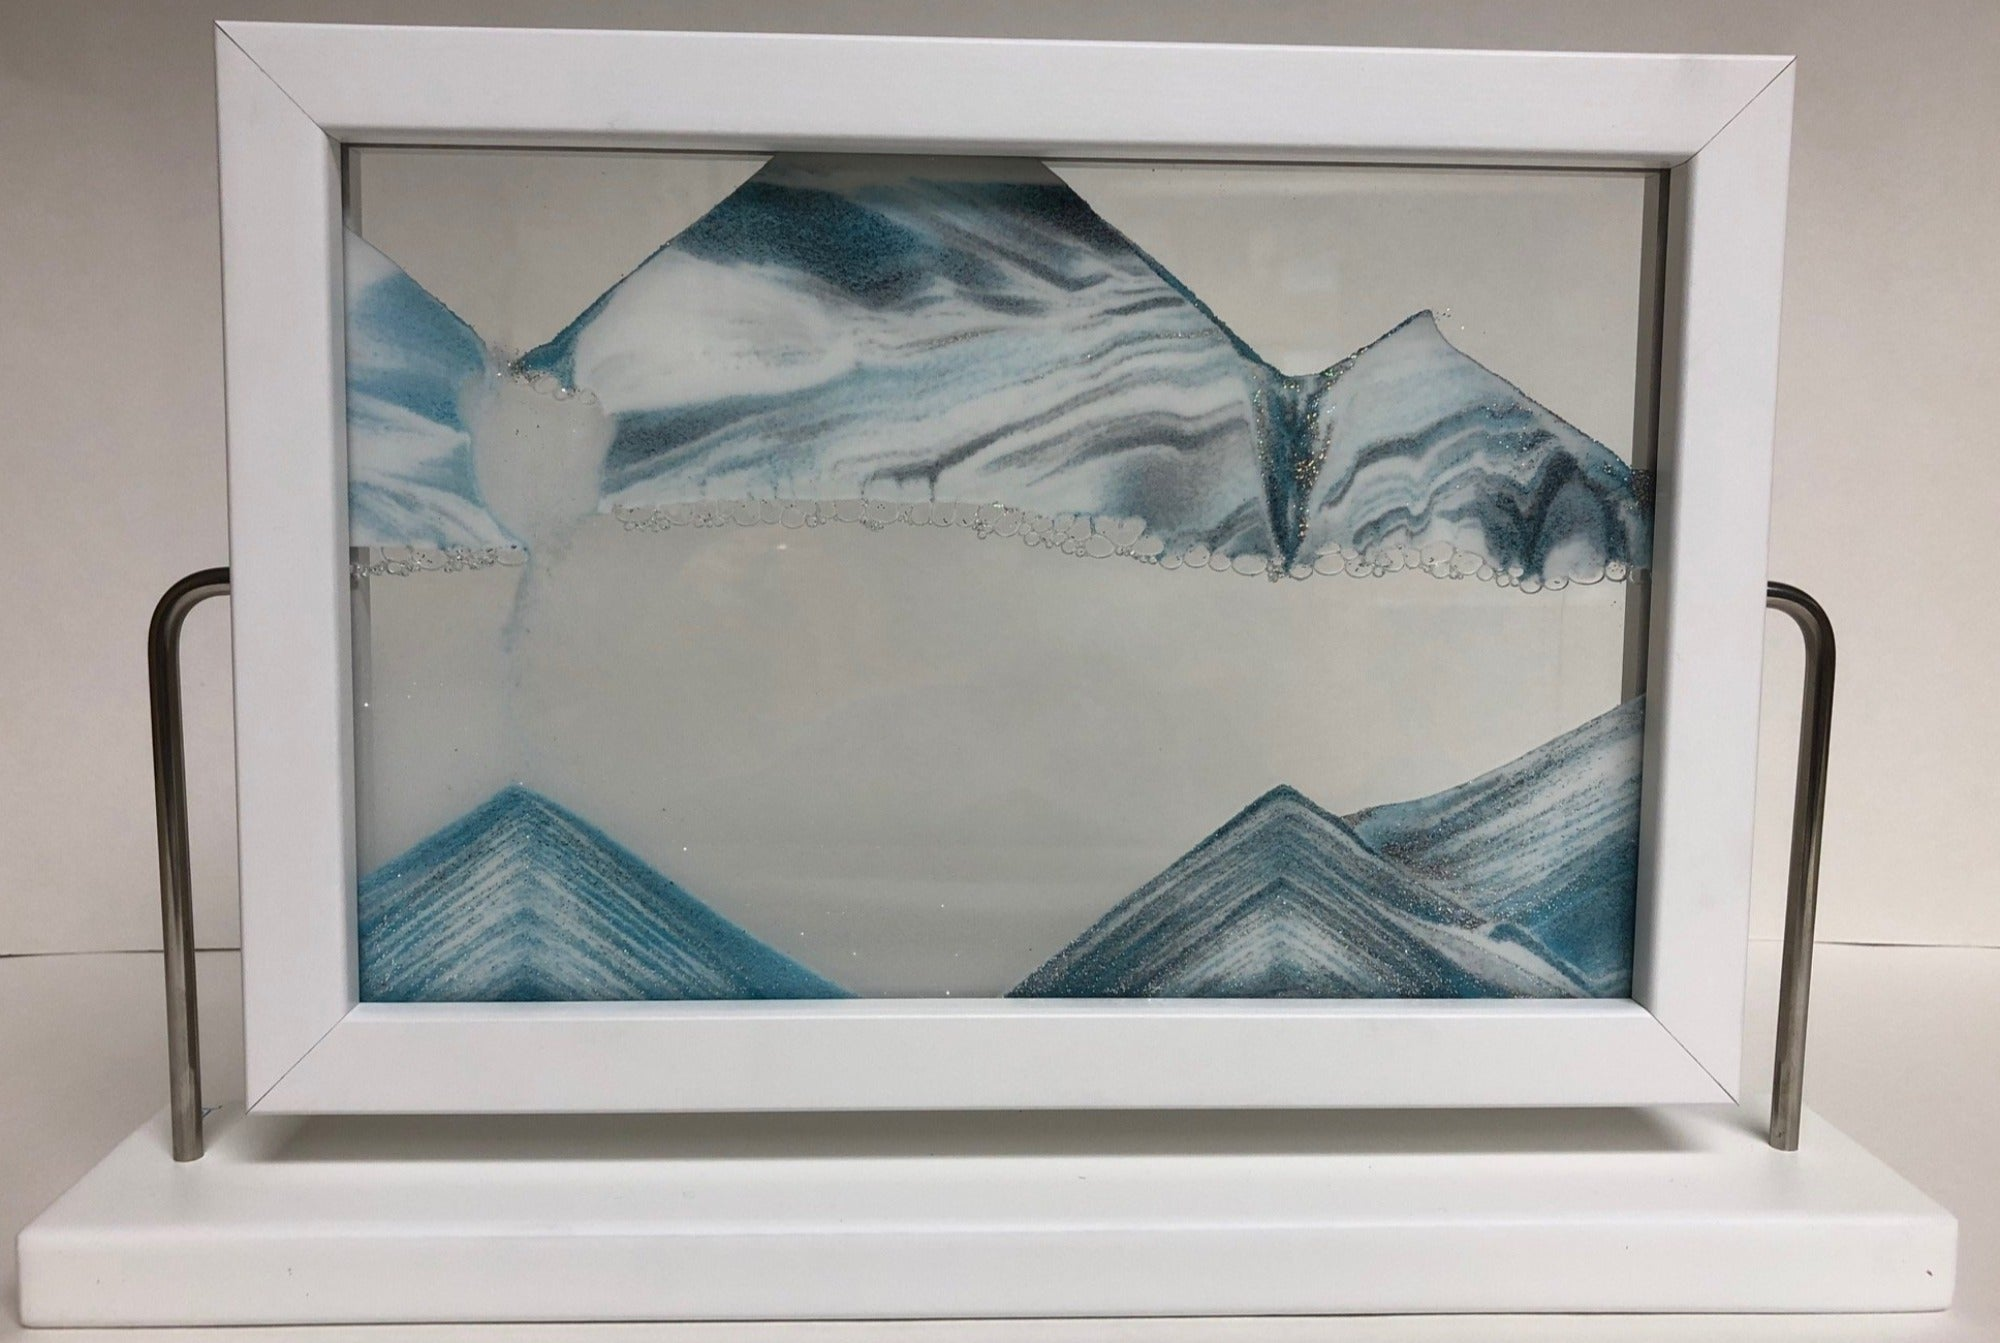 Picture of (NEW!) Window Iceberg Sand Art- By Klaus Bosch Sold By MovingSandArt.com